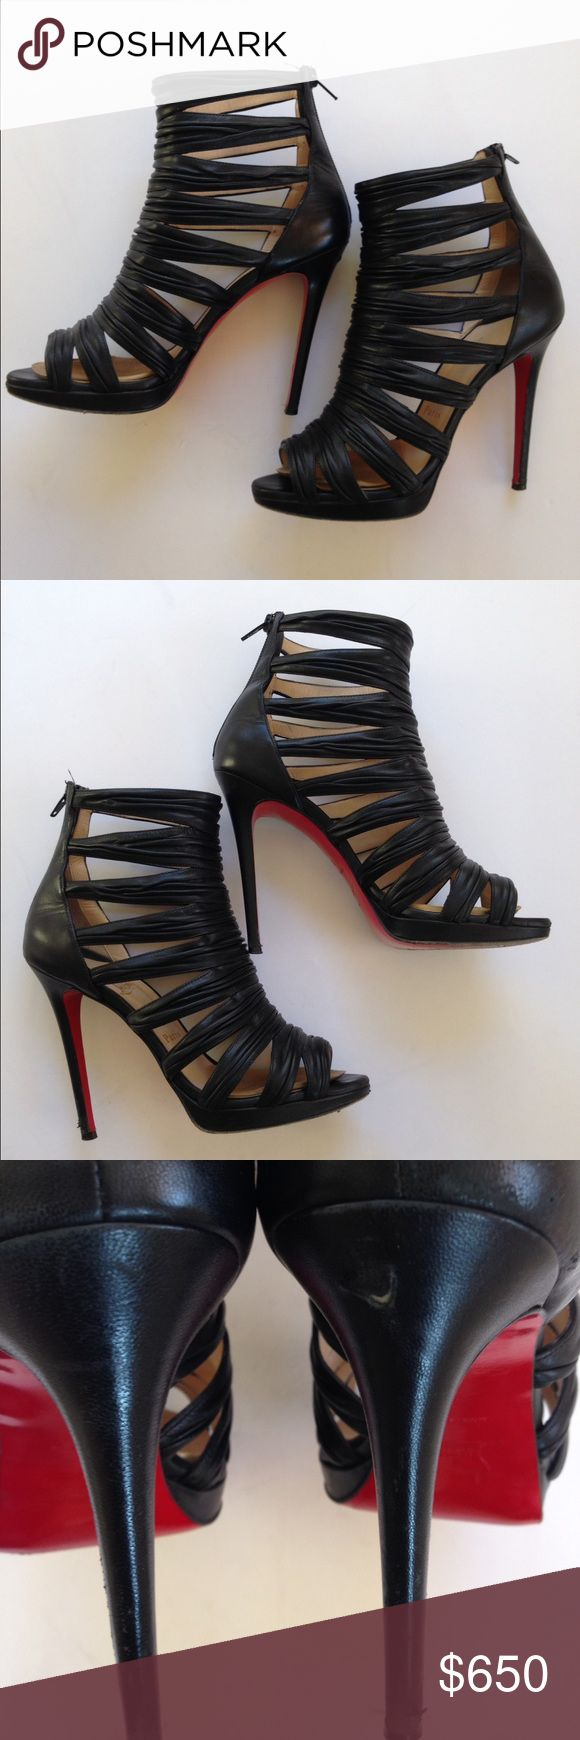 Guaranteed Authentic Christian Louboutin Bootie Tinazata 120 Nappa Leather Ruched Black Sandal Bootie. Heel Height: 4.72 Inches. Material: Leather Upper Leather Lining And Leather Sole.  Condition: Gently Used In Good Condition! Barely Noticeable Nick On Inside Right Heel. Some wearing on lower heel, but not visible while worn.Please enlarge photos to see details of pre-owned condition. Will ship with original box and dust bag. 🚫 Trades 🚫Lo ball offers please. Christian Louboutin Shoes…